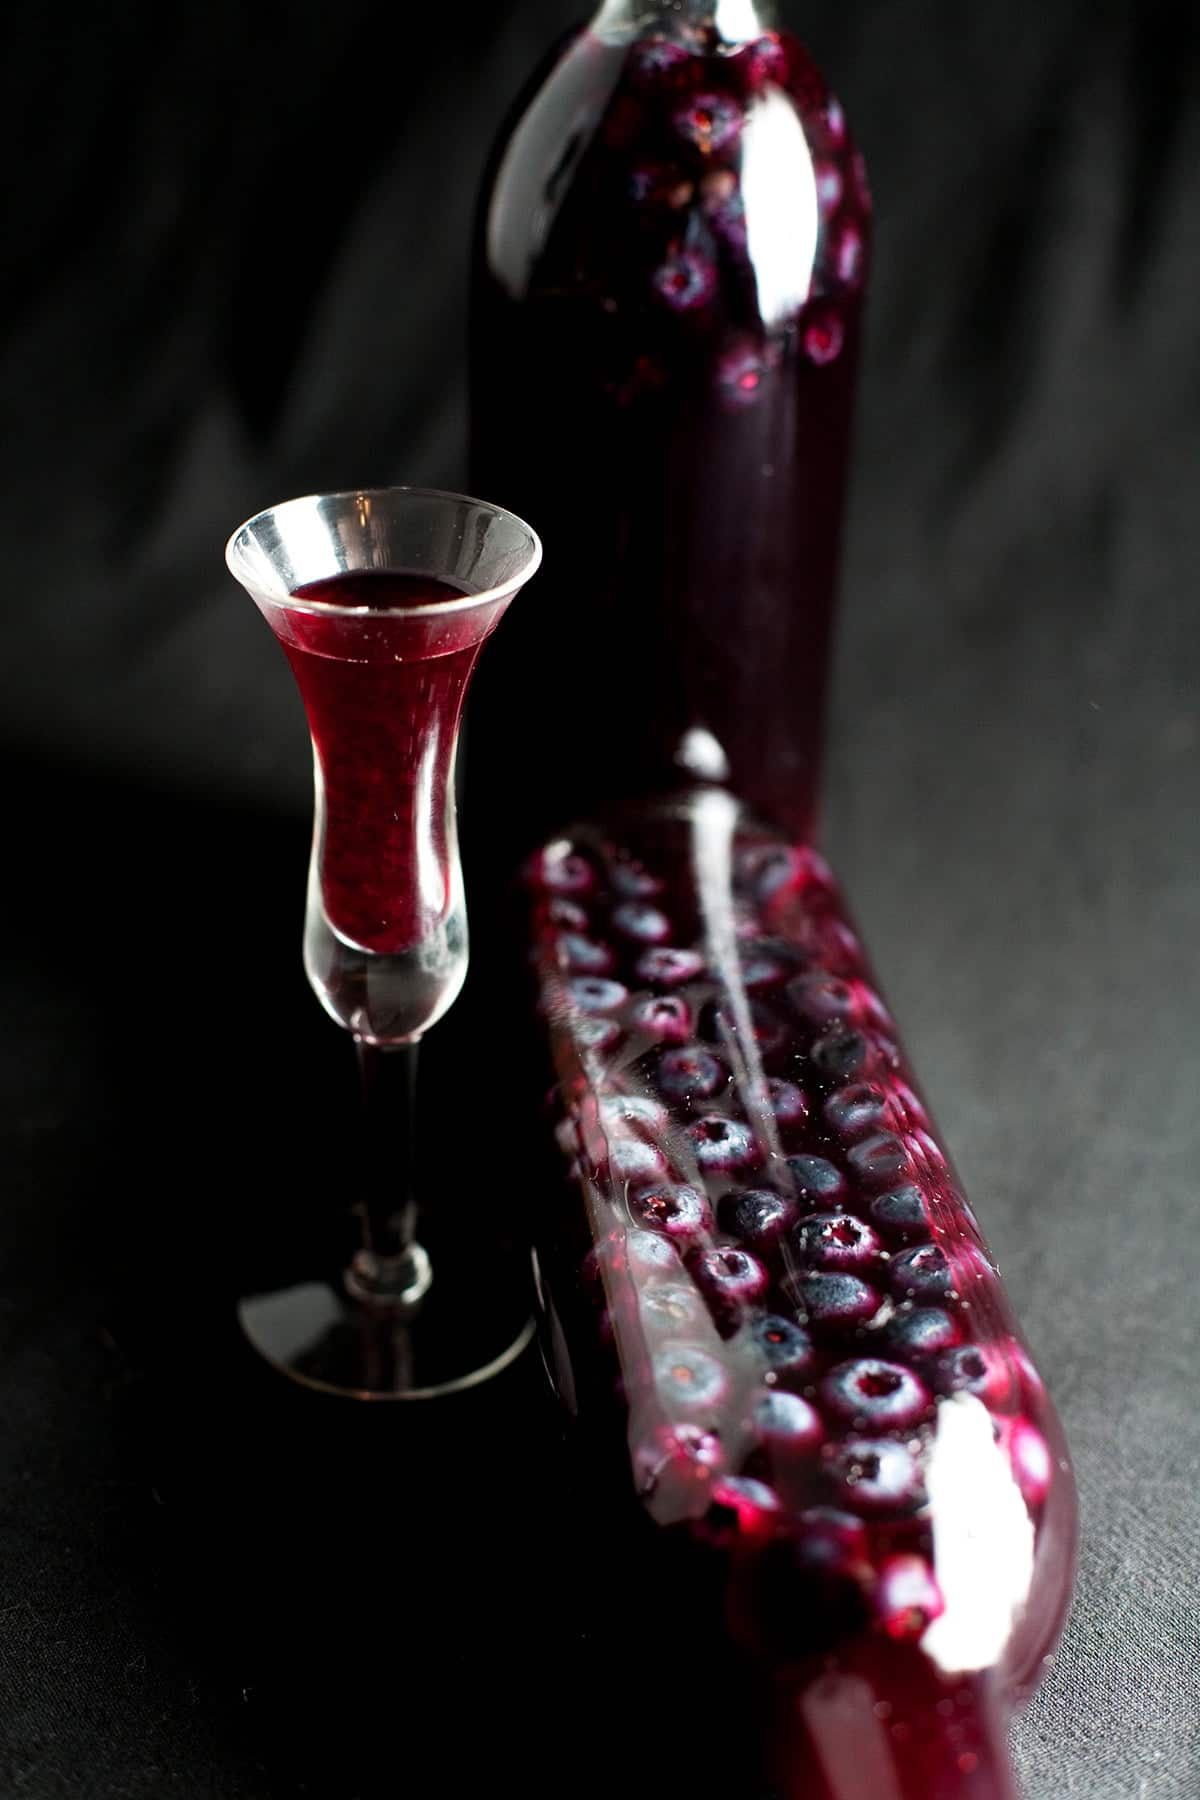 Two bottles of blueberry liqueur - with blueberries showing in the bottles - are shown next to a fluted shot glass filled with the liqueur.